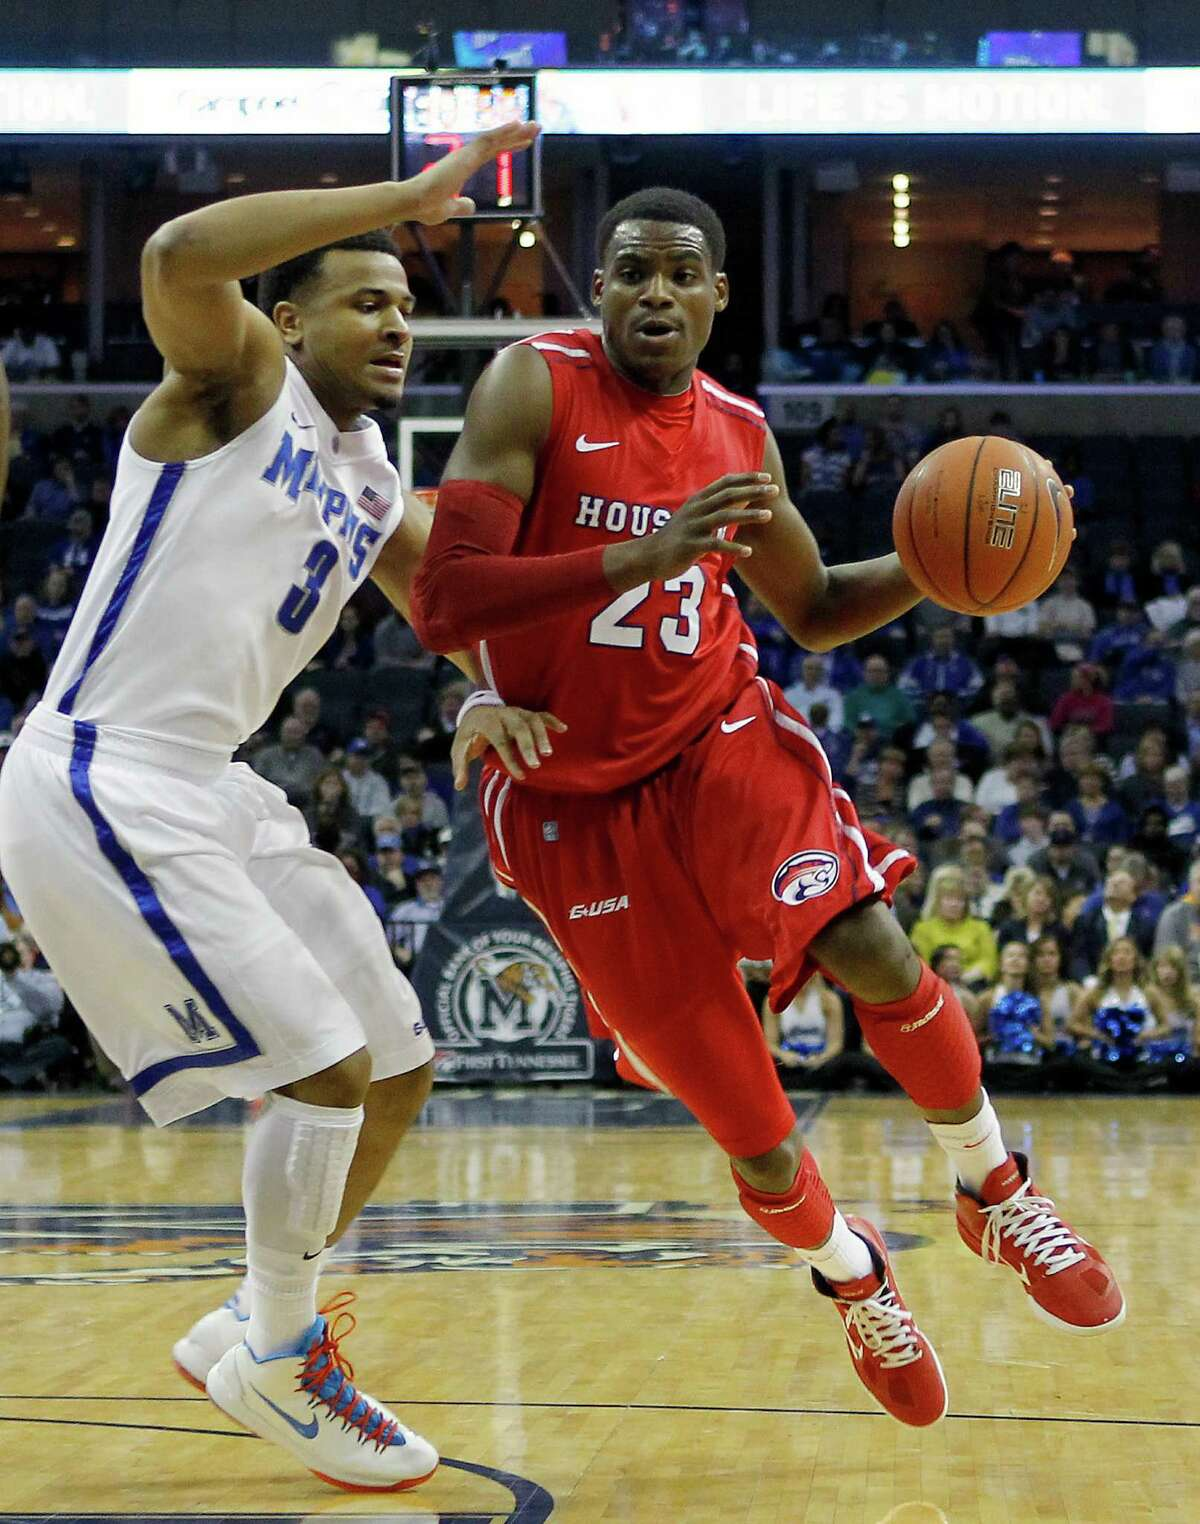 For the Coogs, the first American Athletic Conference tournament will be in the familiar confines of the FedExForum.